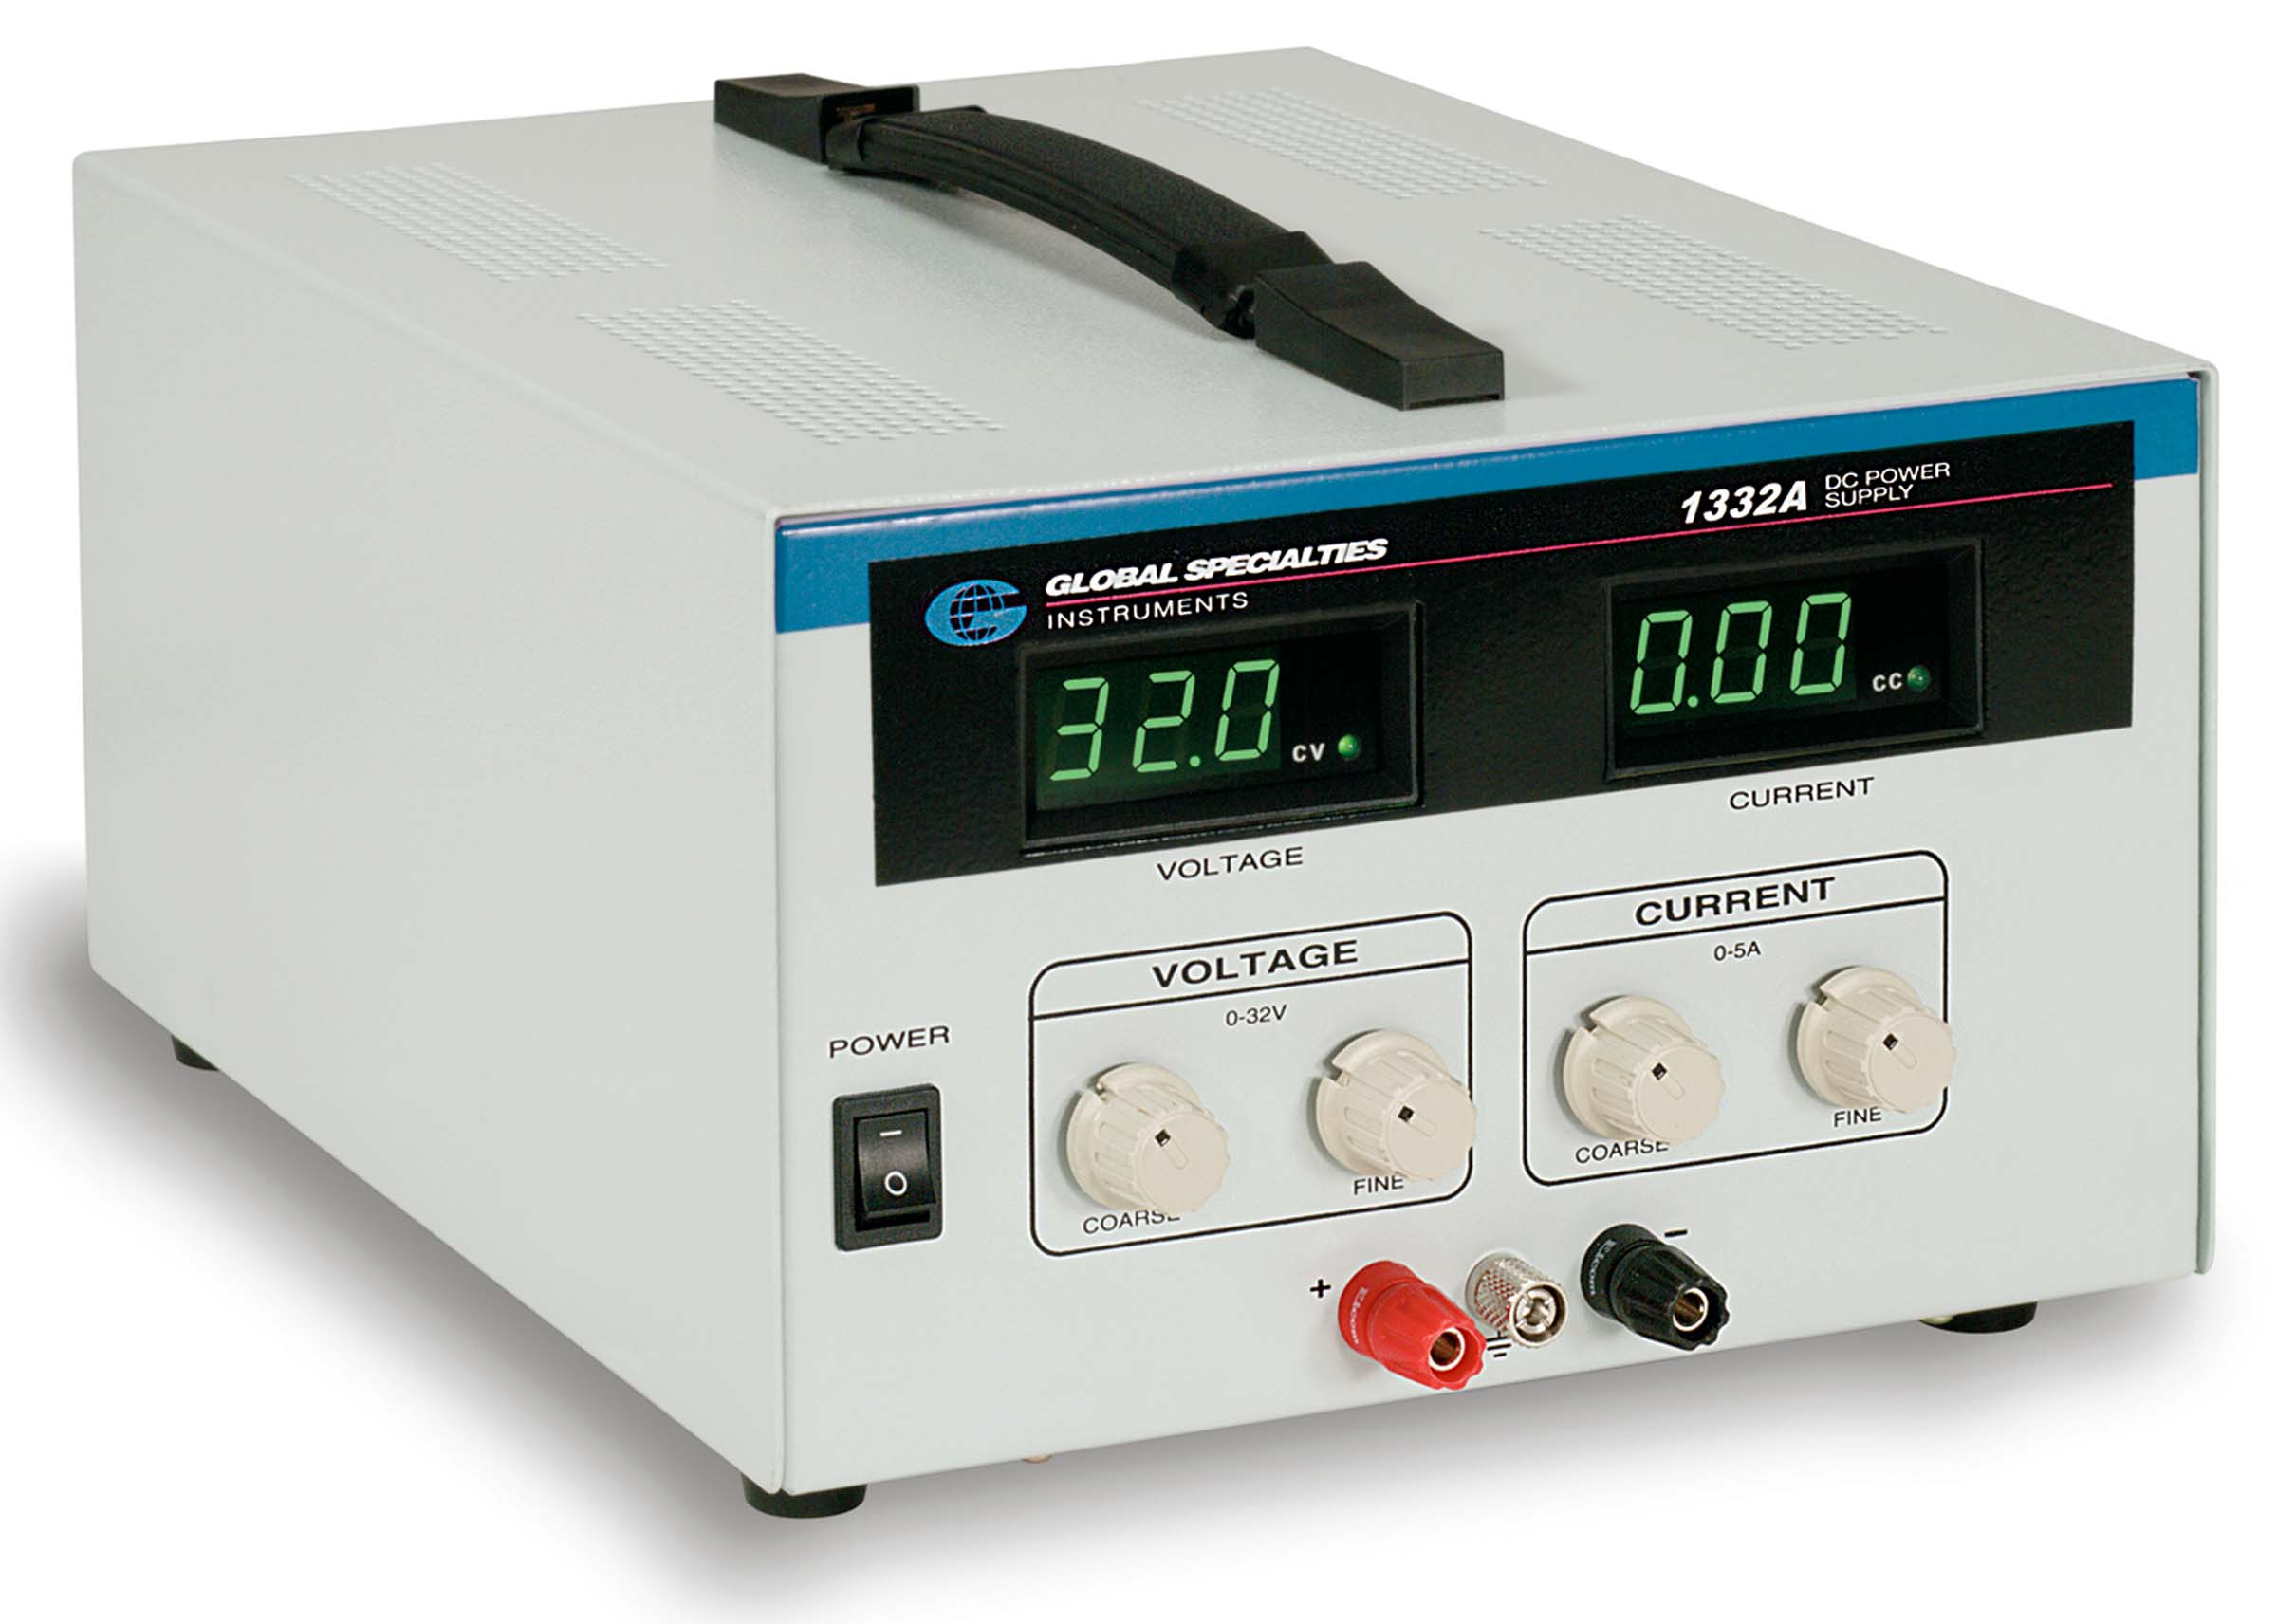 Global Specialties 1332A DC Power Supply: 0-32V, 0-5A